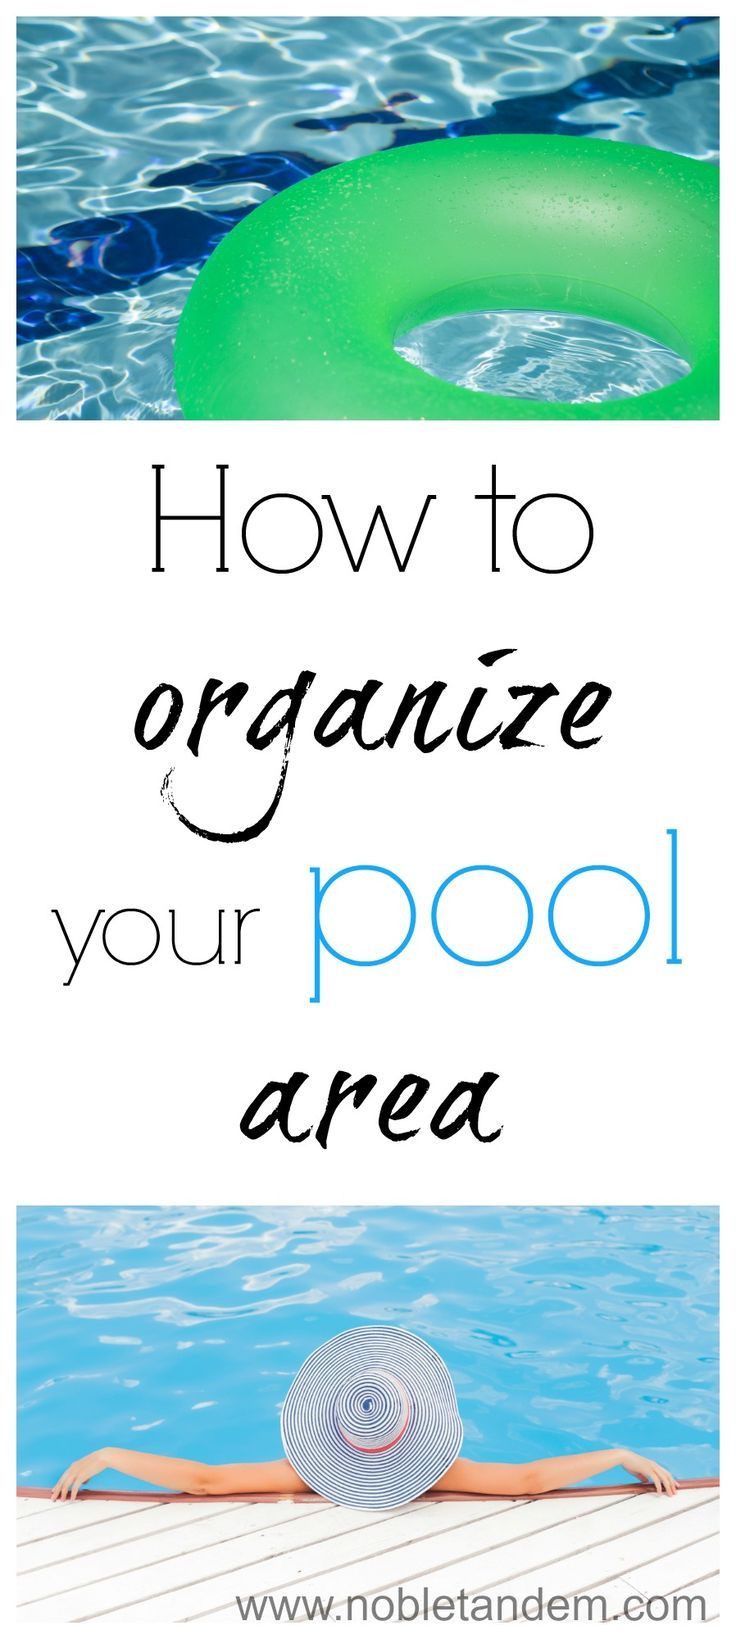 How to organize your pool area / Organiser sa cours extérieure